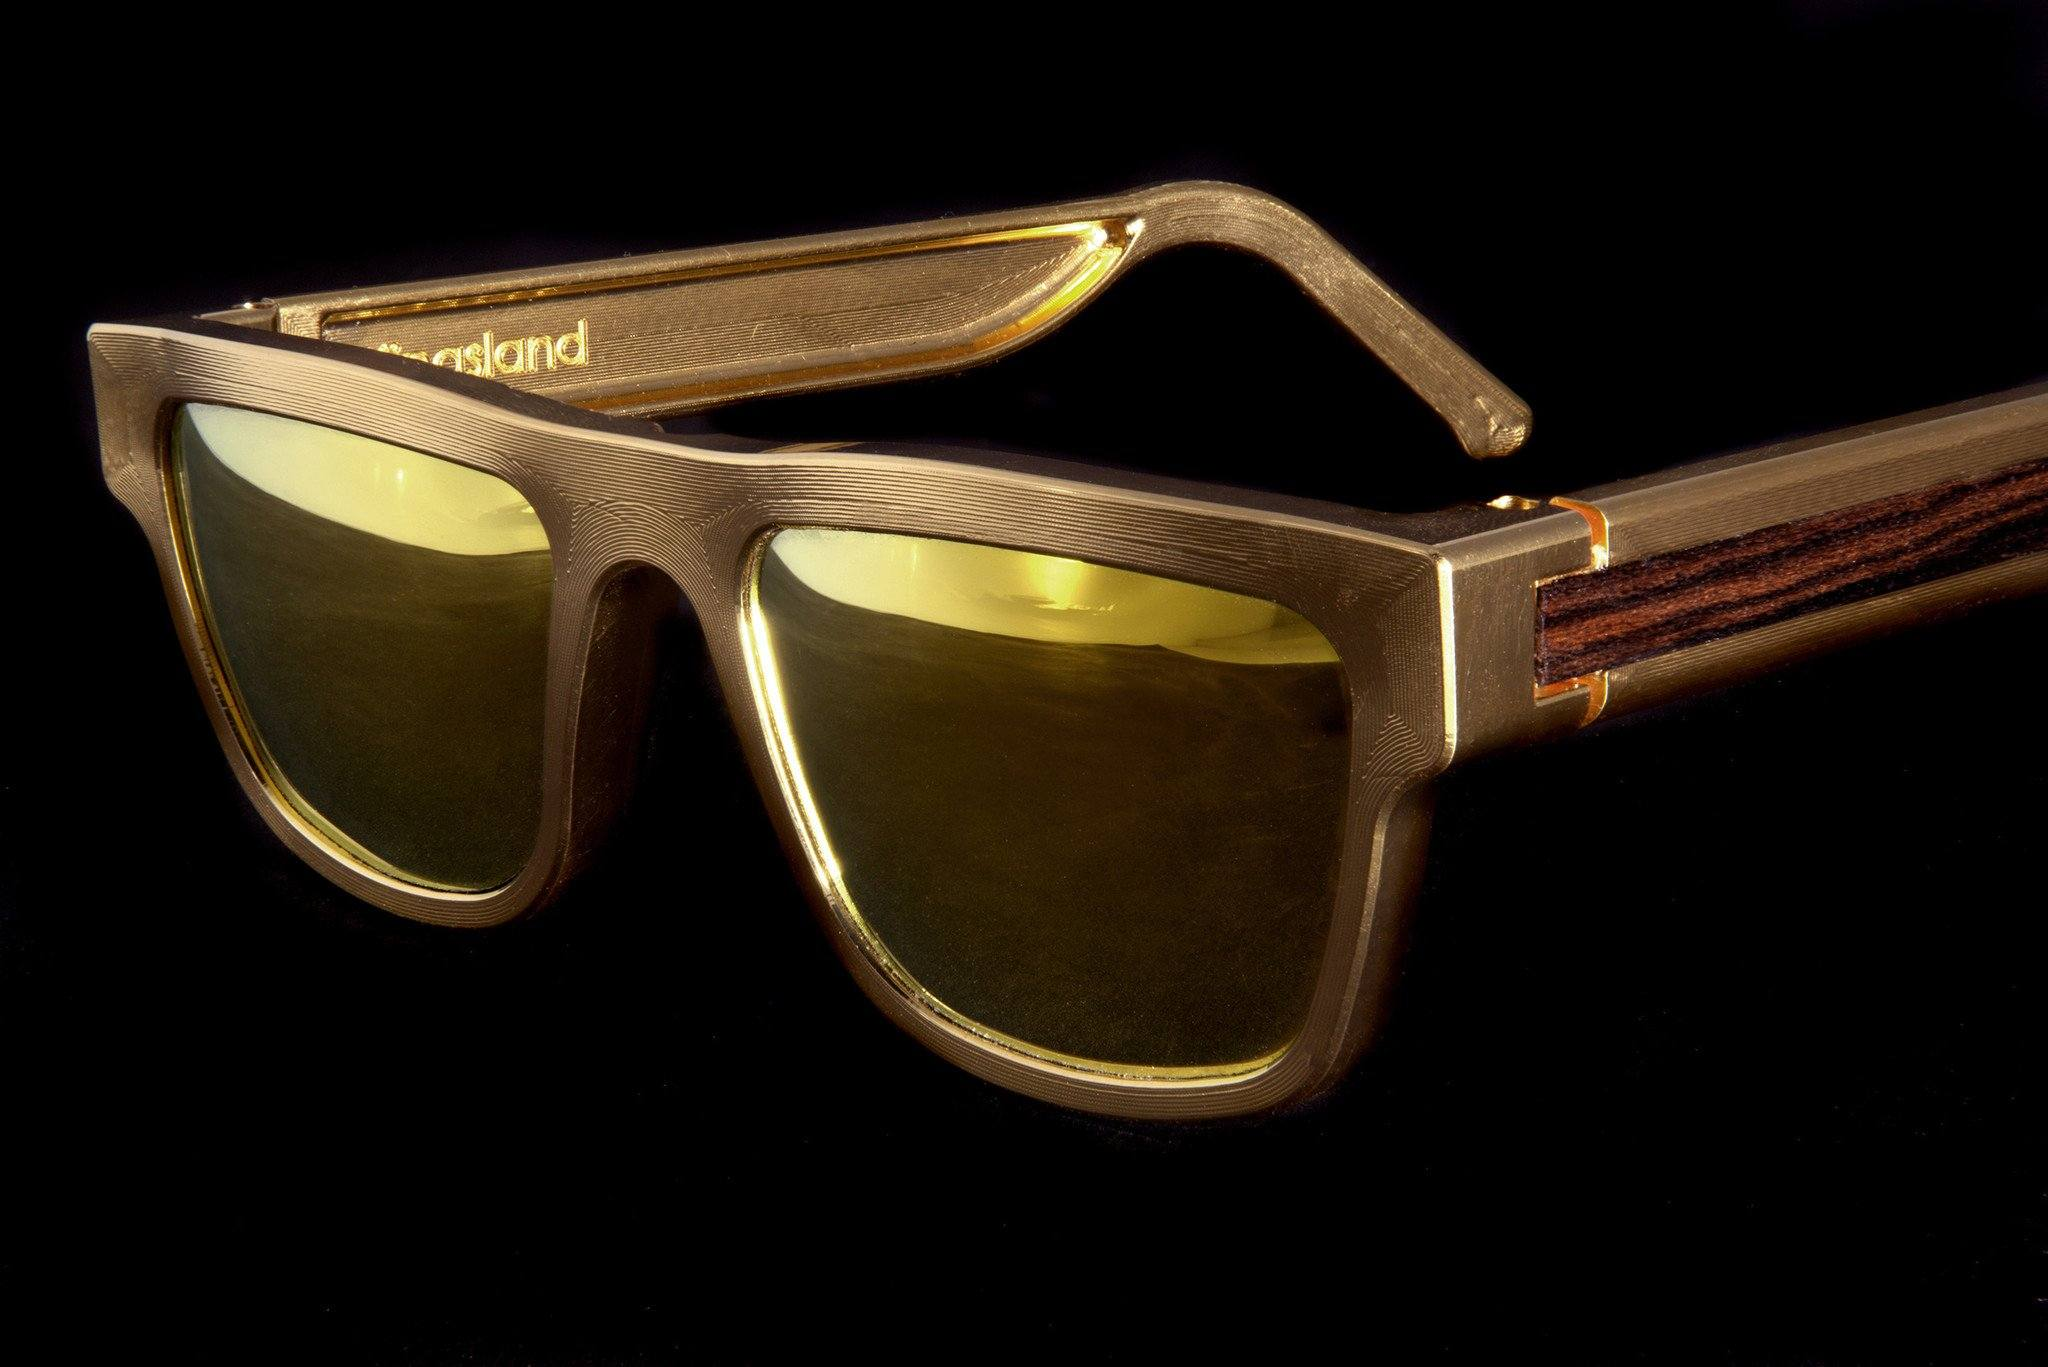 Kingsland Frame: Gold Mirror Lenses (Polarized)